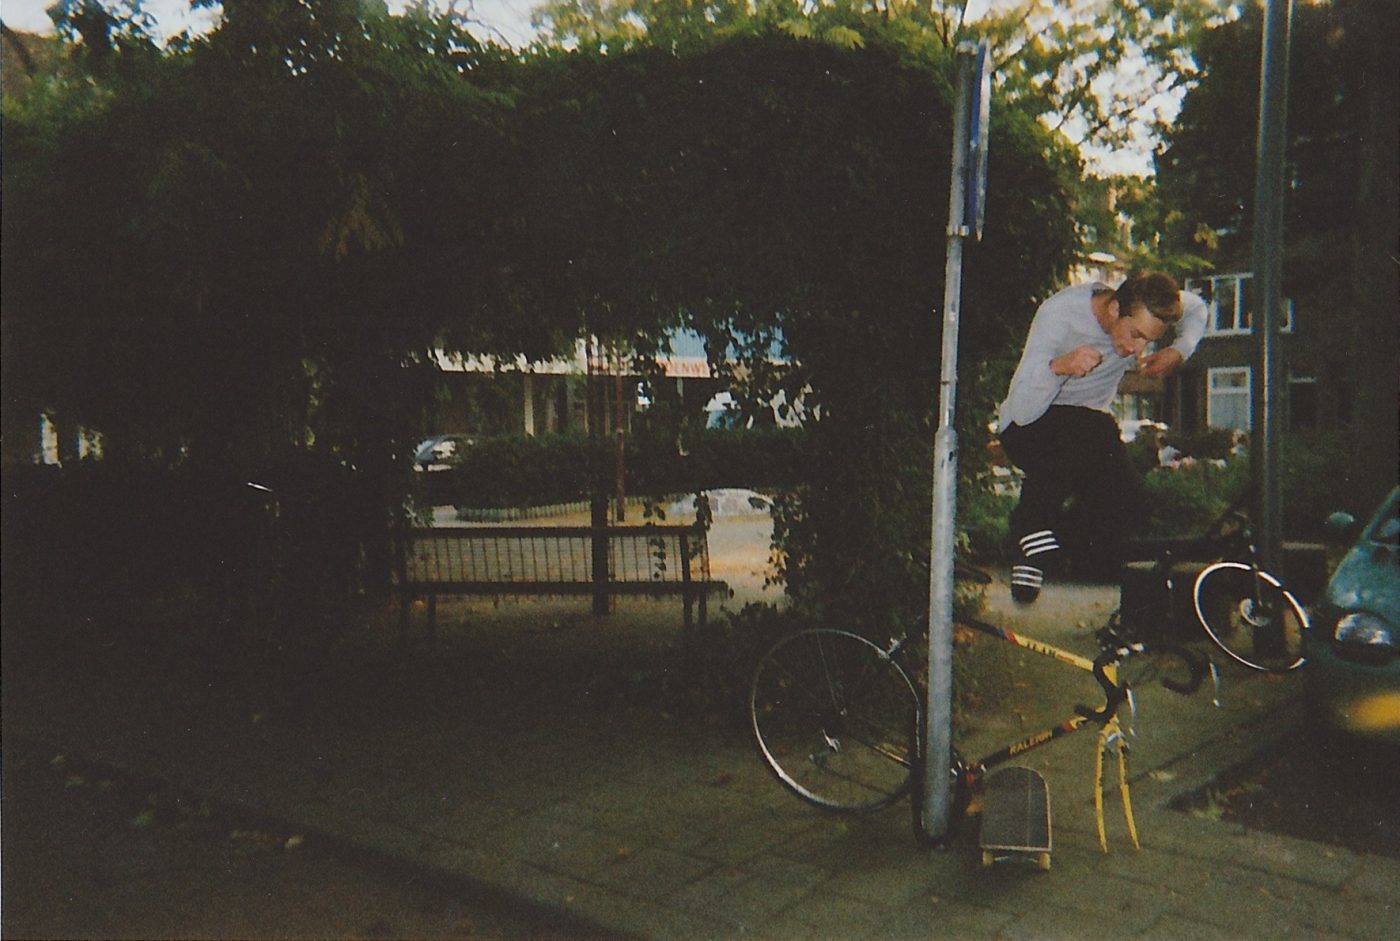 Rick Den Ouden Disposable Film Camera Skateboarding Rotterdam